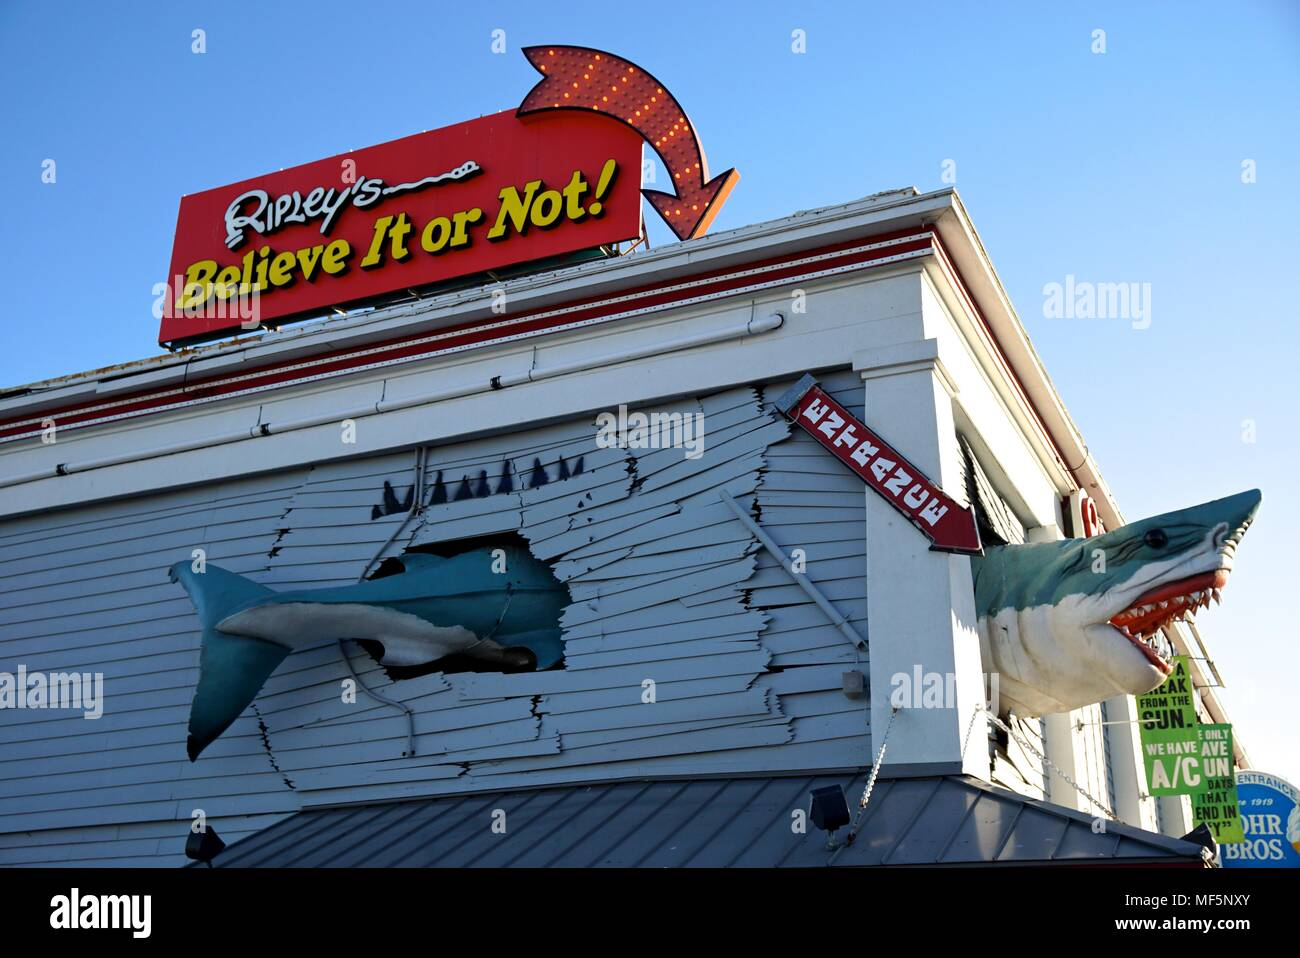 Ripley's Believe it or Not in Ocean City, Maryland - Stock Image